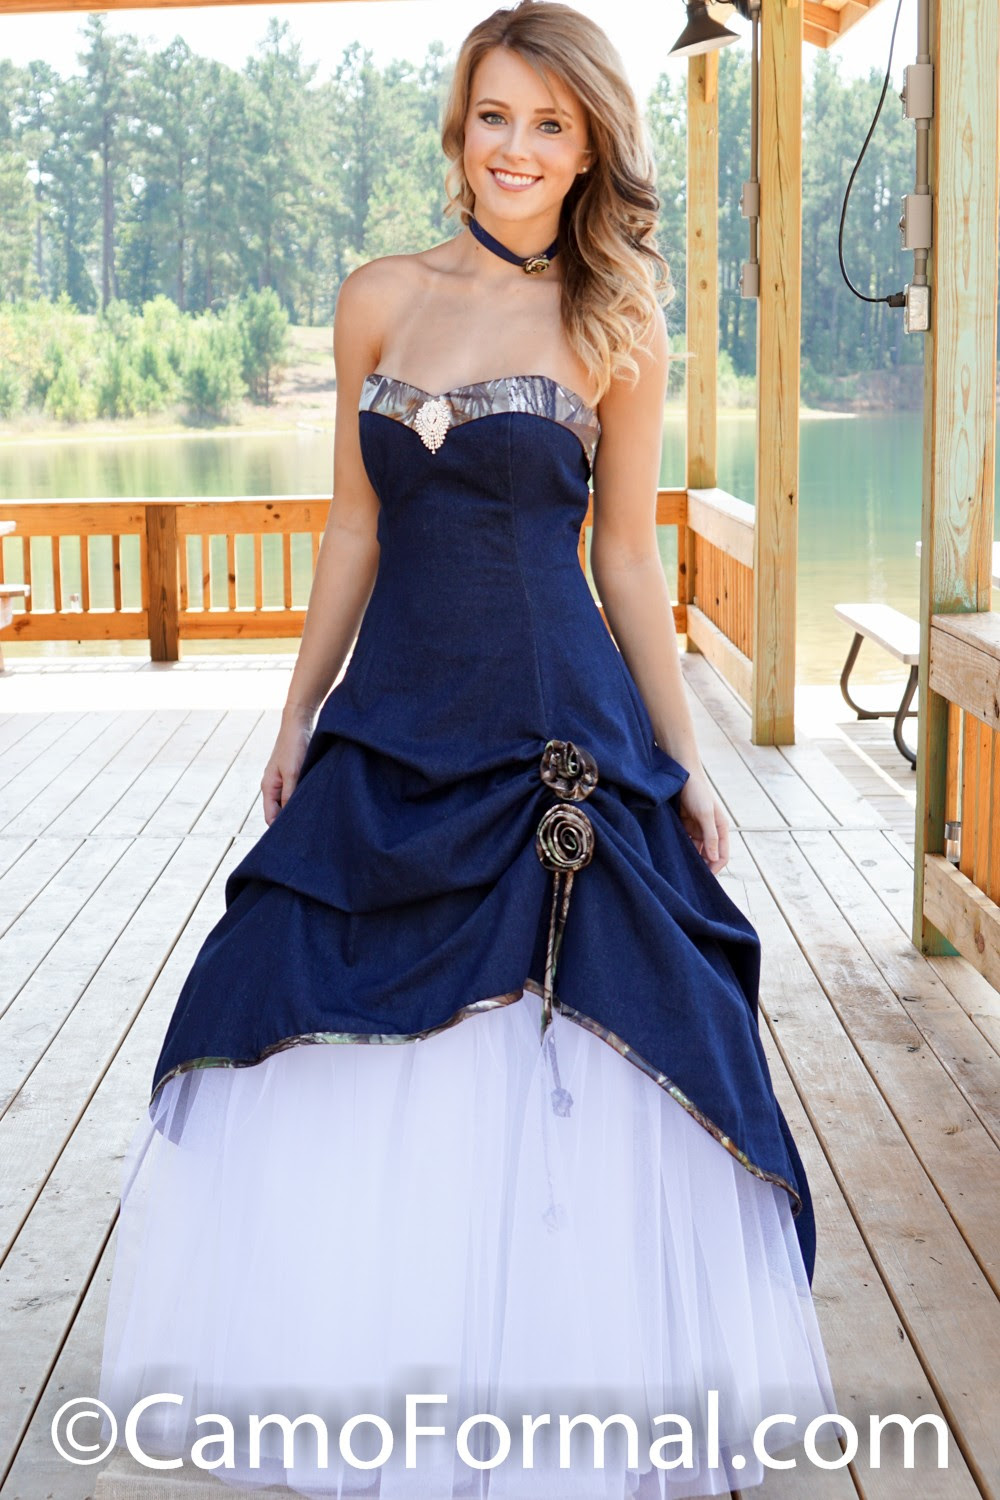 View Wedding Dress With Jeans Gif